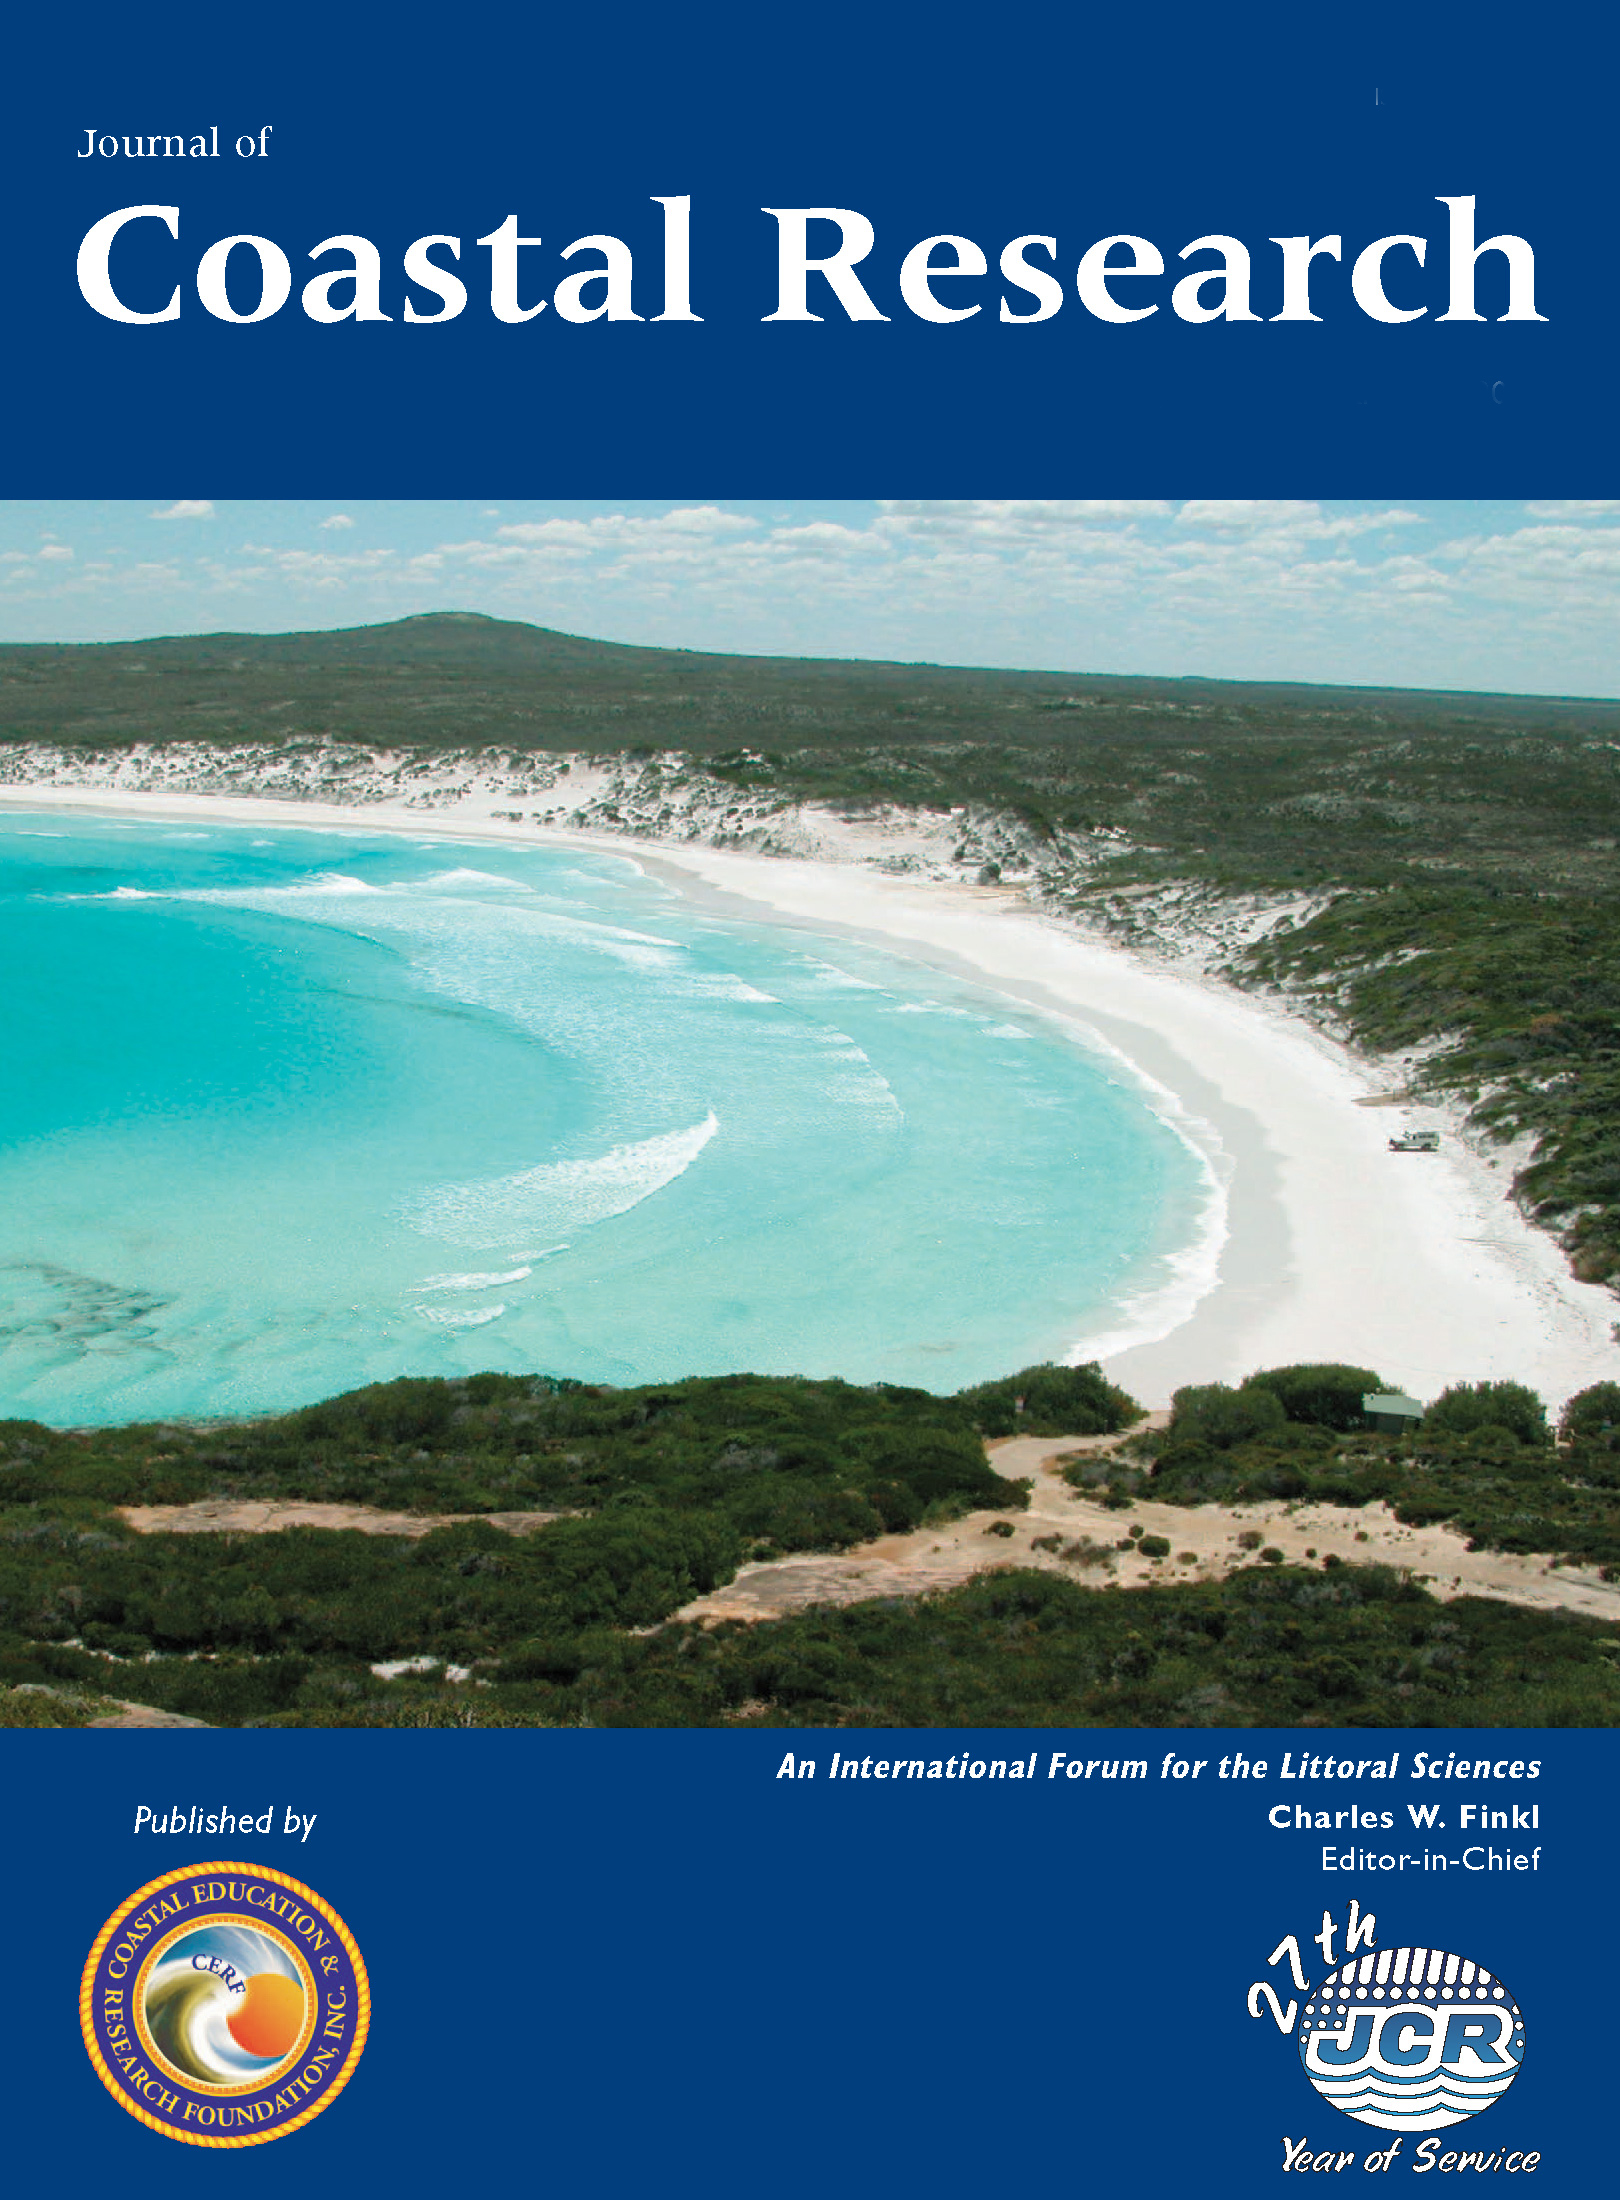 Journal Cover - Title in white lettering over a photograph of a white beach coastline against a dark blue background.